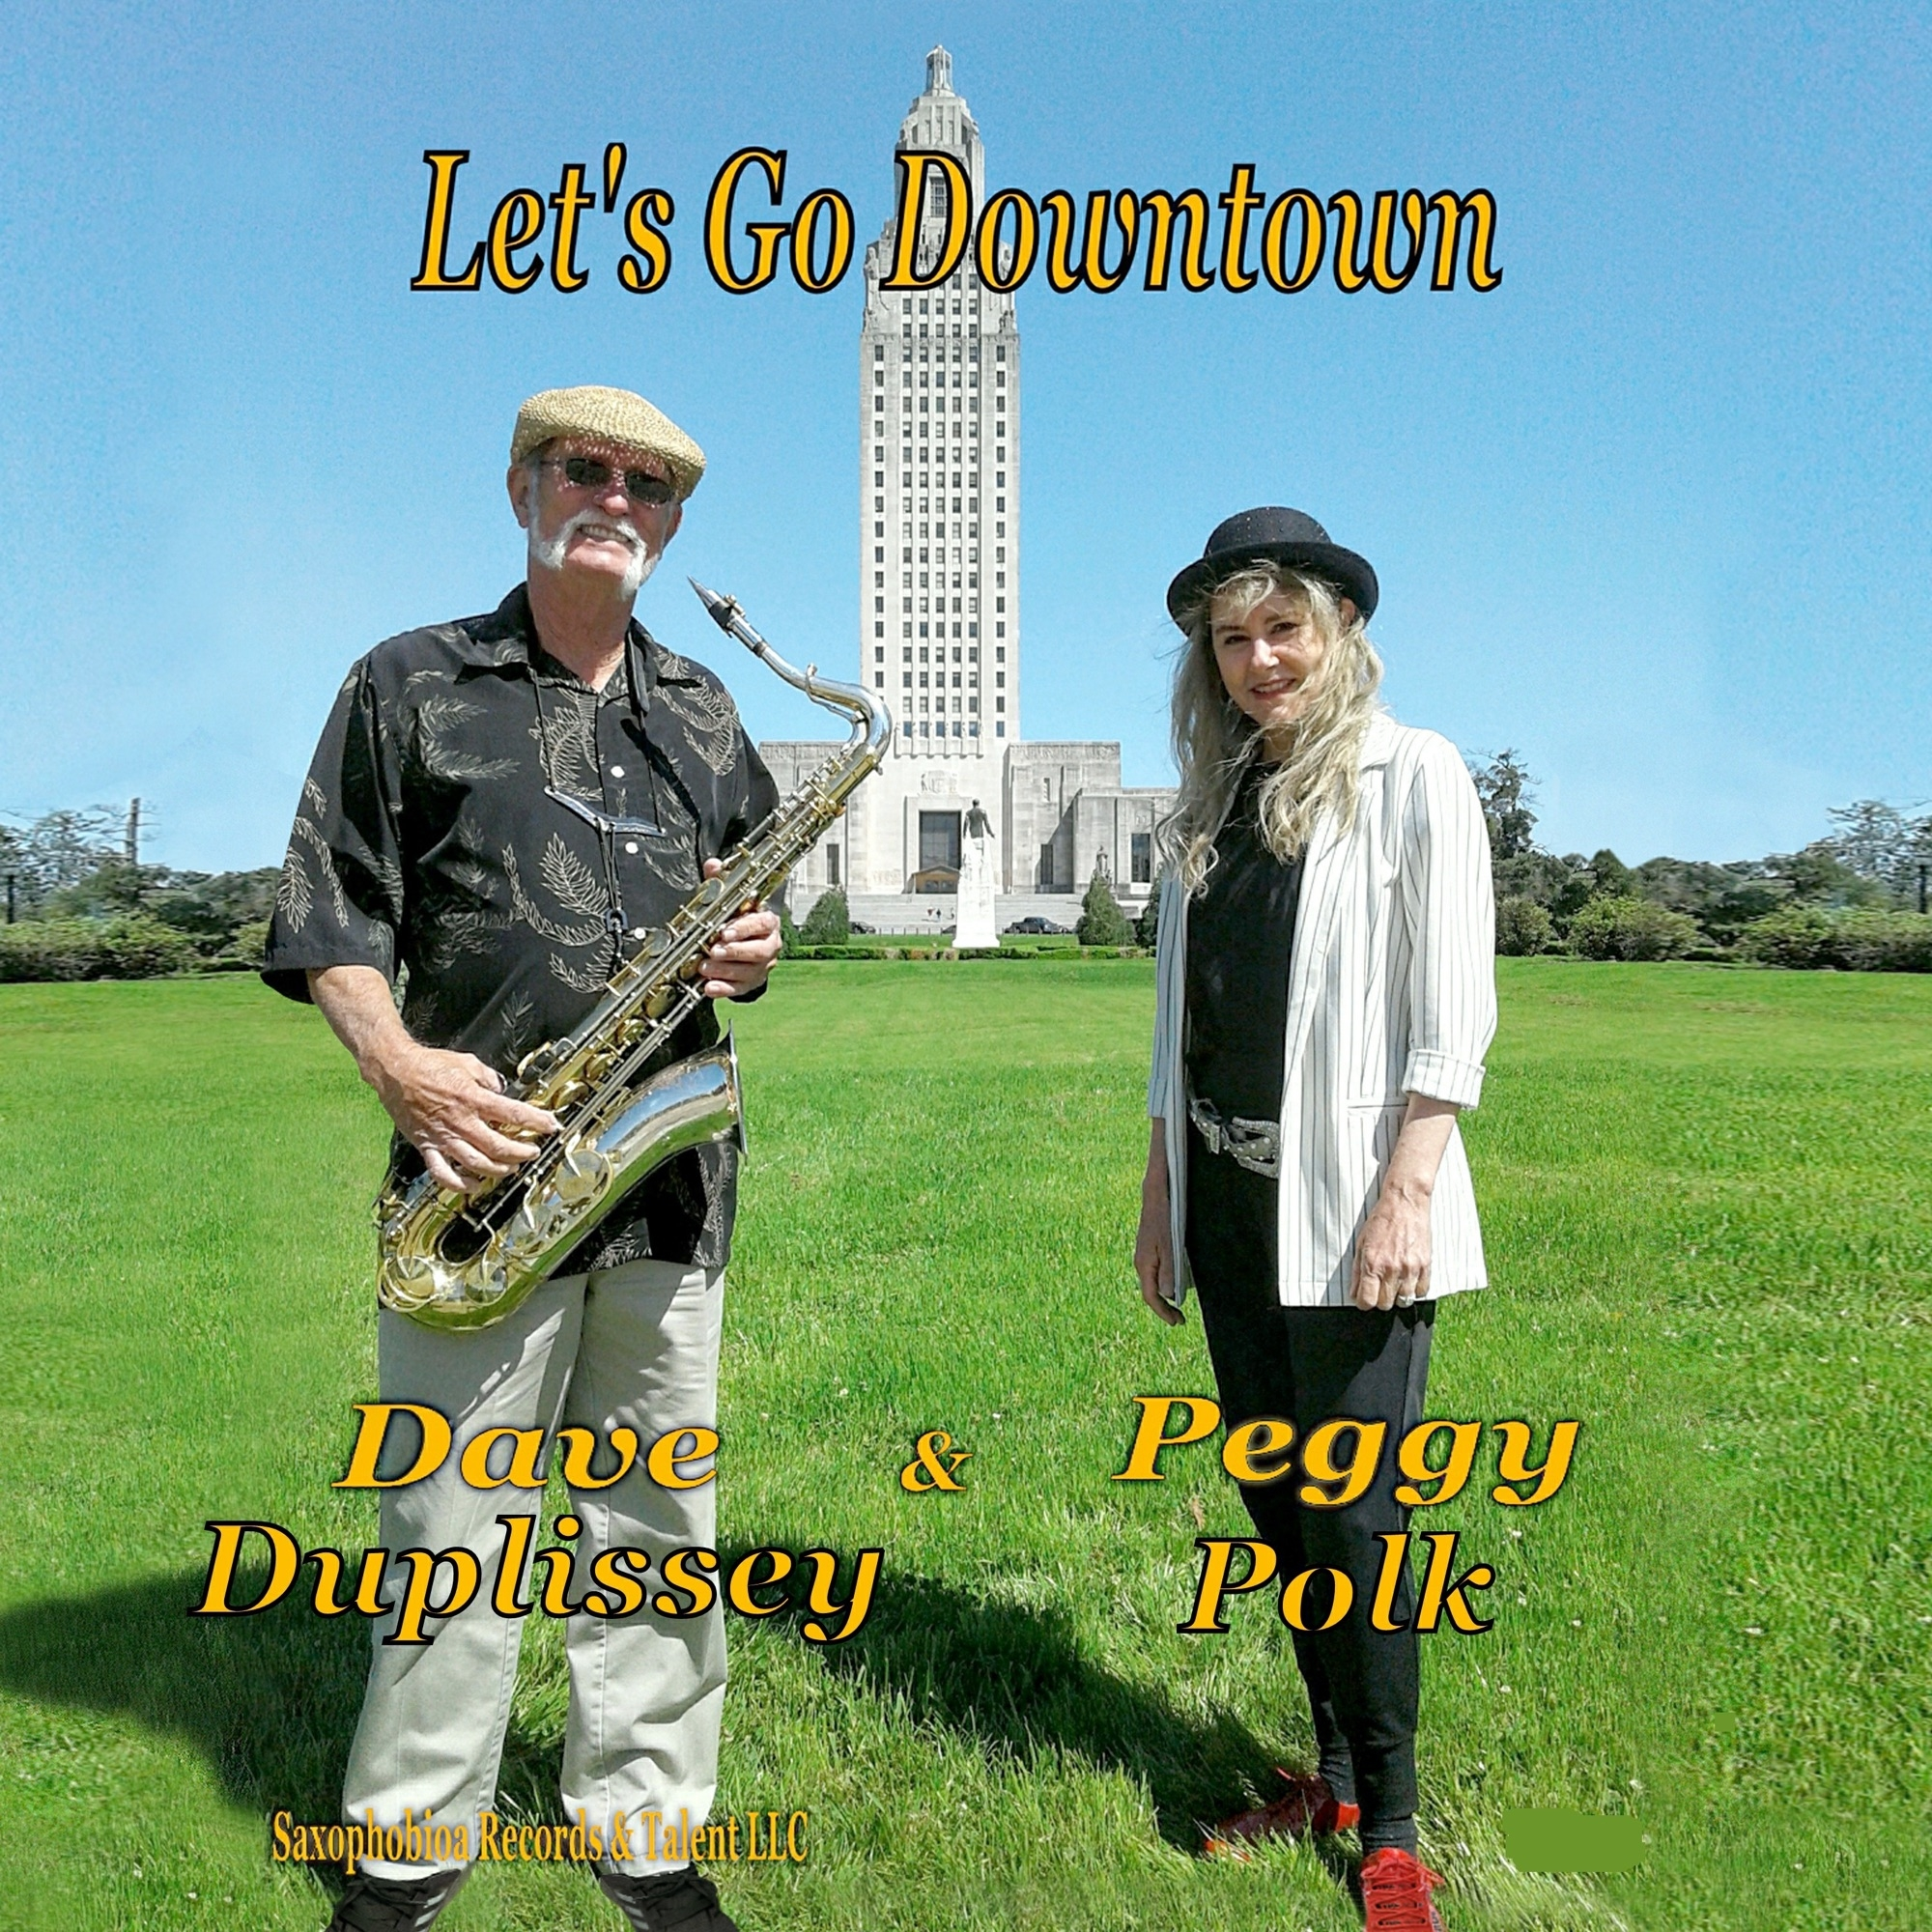 Art for Let's Go Downtown by Dave Duplissey & Peggy Polk